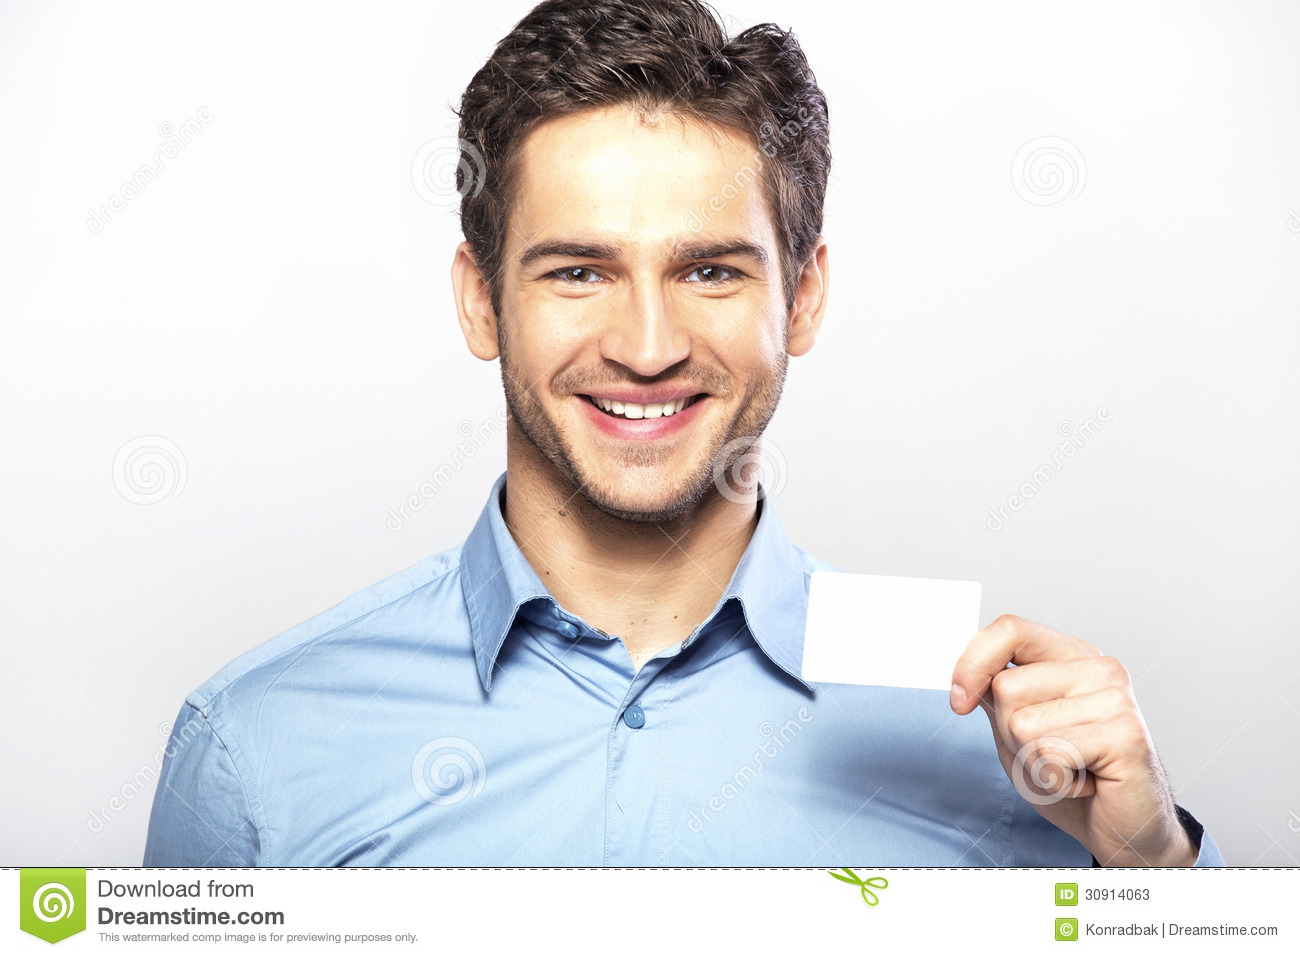 Smiling Handsome Guy With Business Card Stock Image - Image of ...